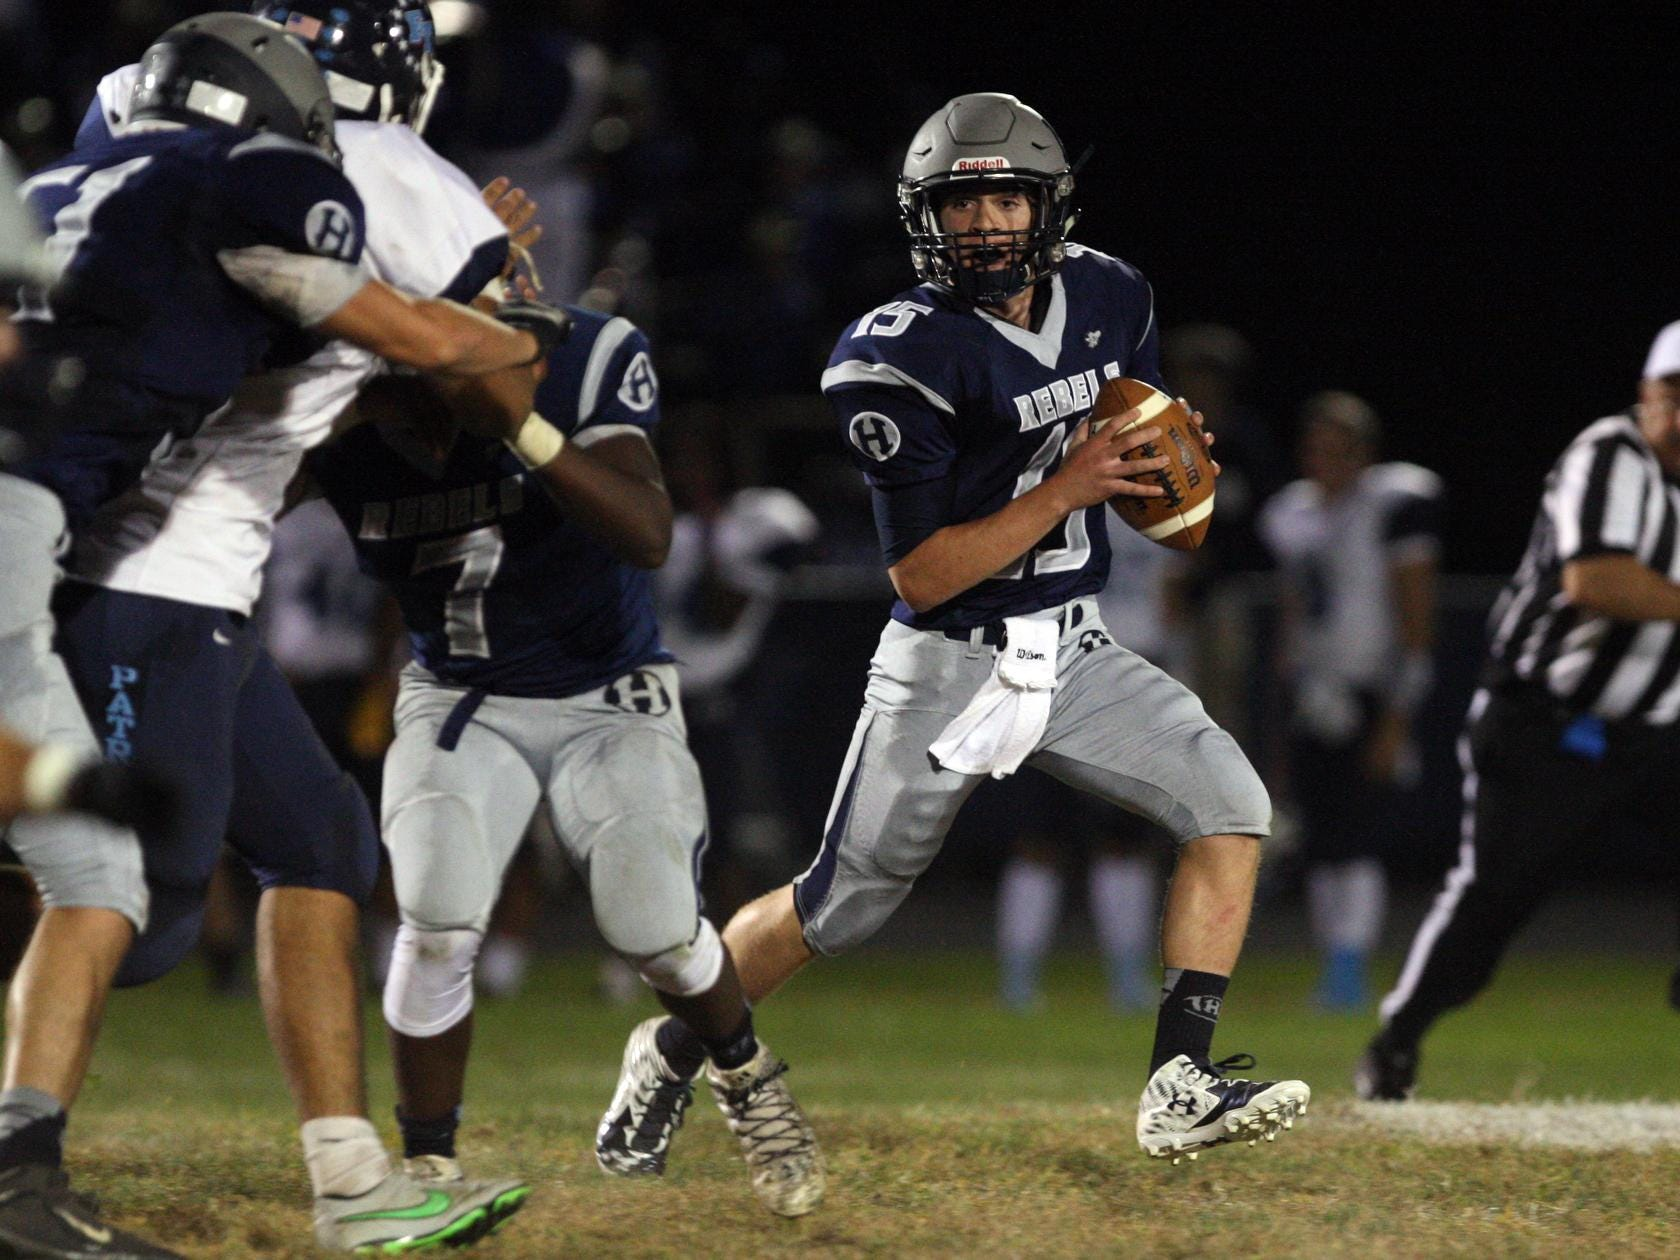 Quarterback Mark Iacobino, #15 Howell, scrambles with the ball as the Freehold Township defense chases him in a football game Friday, September 25, 2015, at Howell High School.